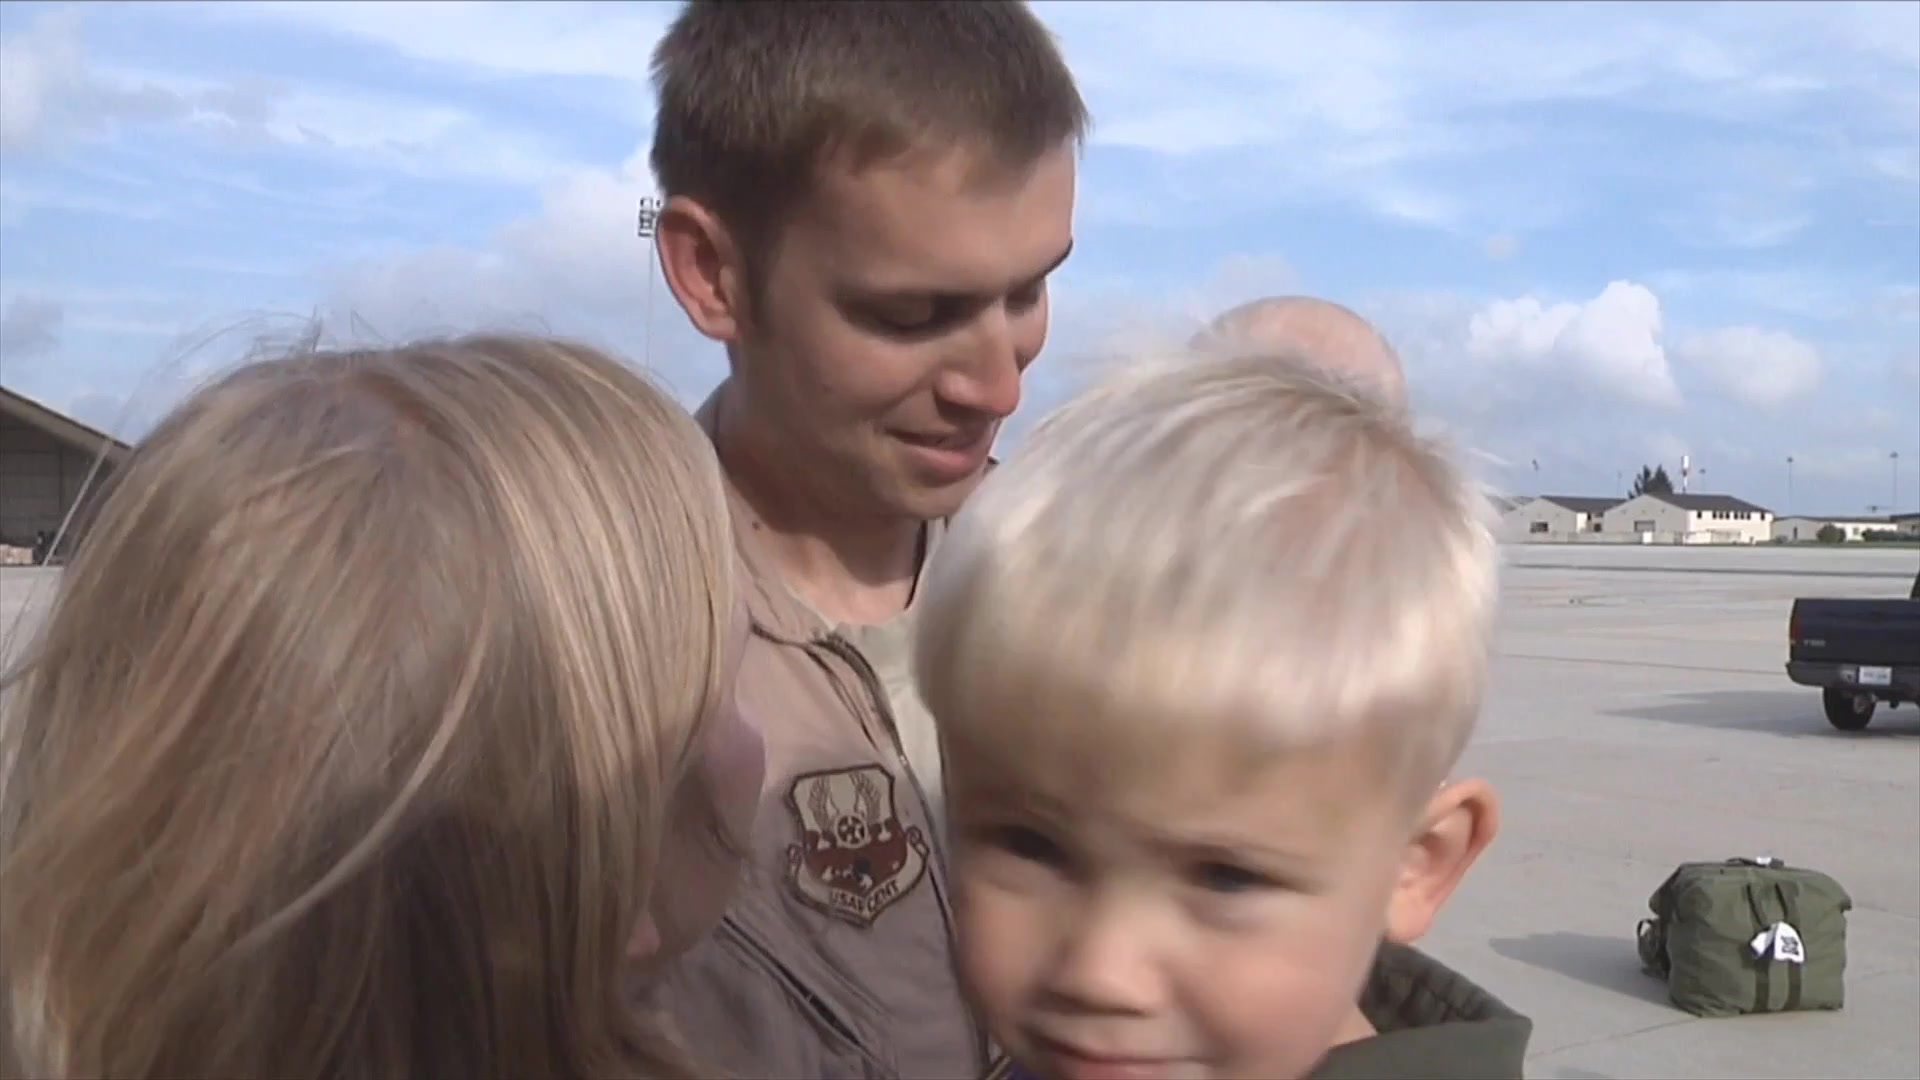 Nobody understands the term sacrifice more than Air Force family members. This video highlights environments our families deal with on a daily basis and allows you to reflect on those moments that are bigger than oneself.